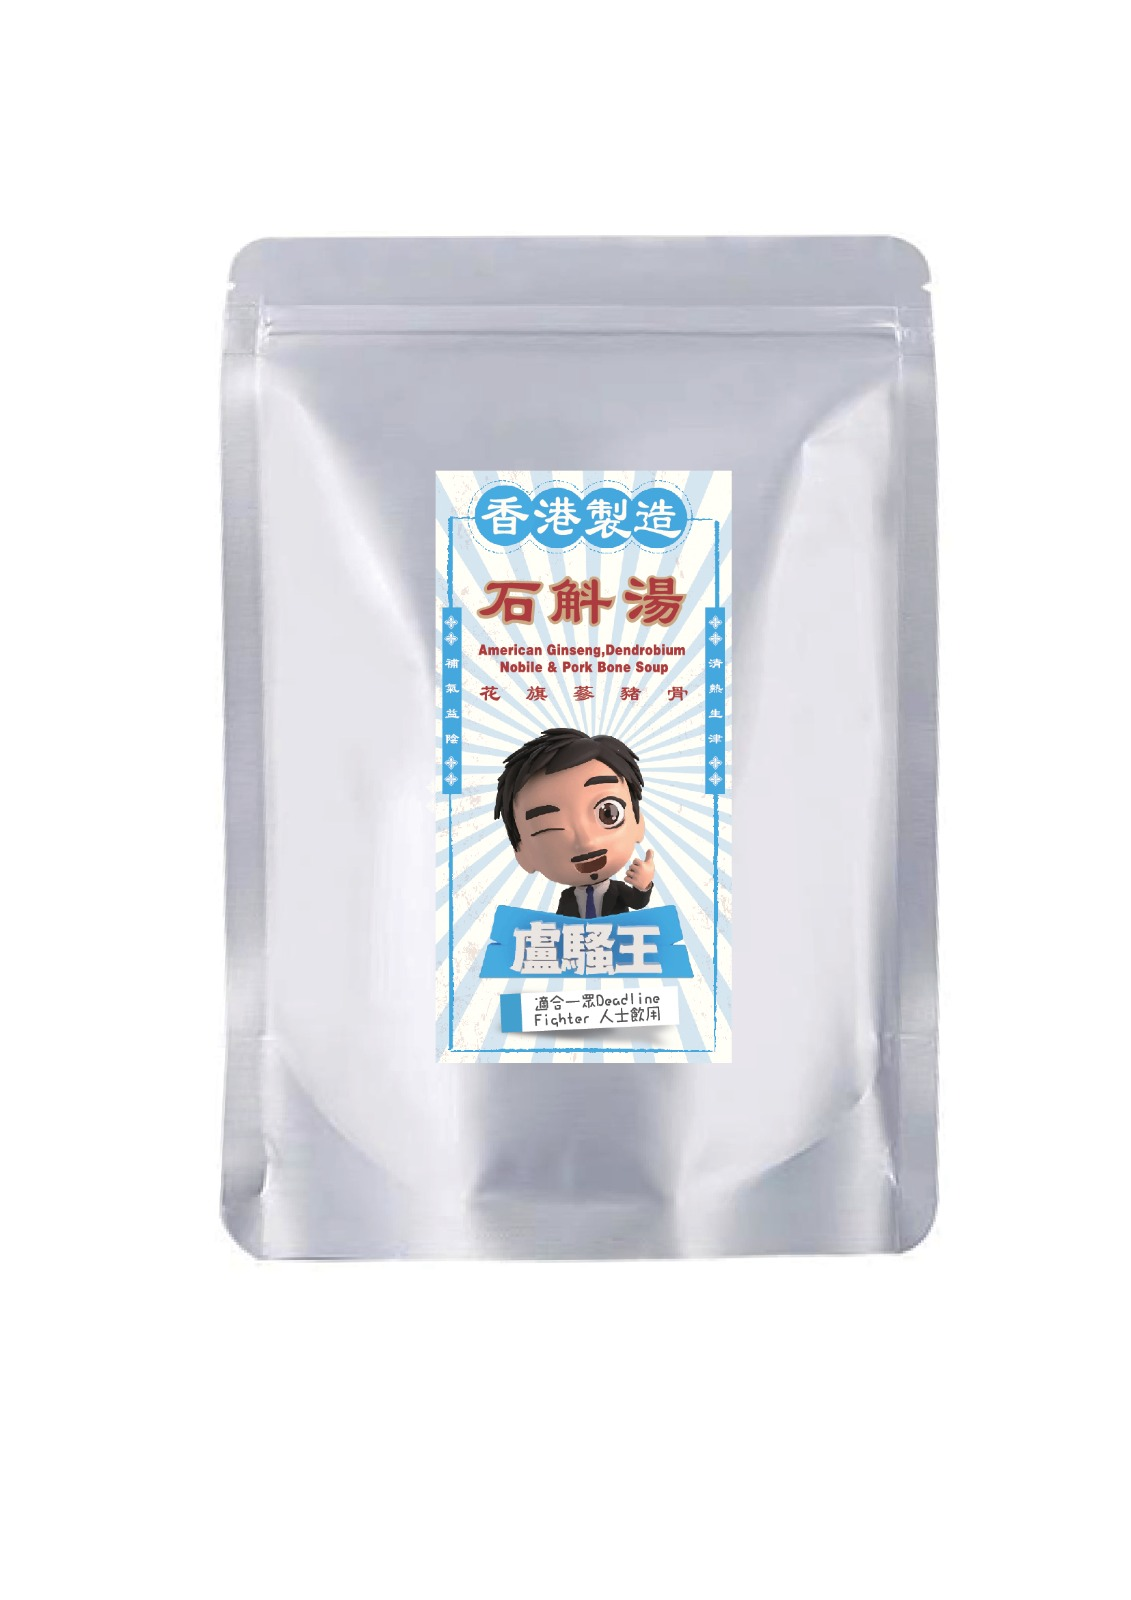 Losooking Series: American Ginseng, Dendrobium Nobile & Pork Bone Soup (New Product)